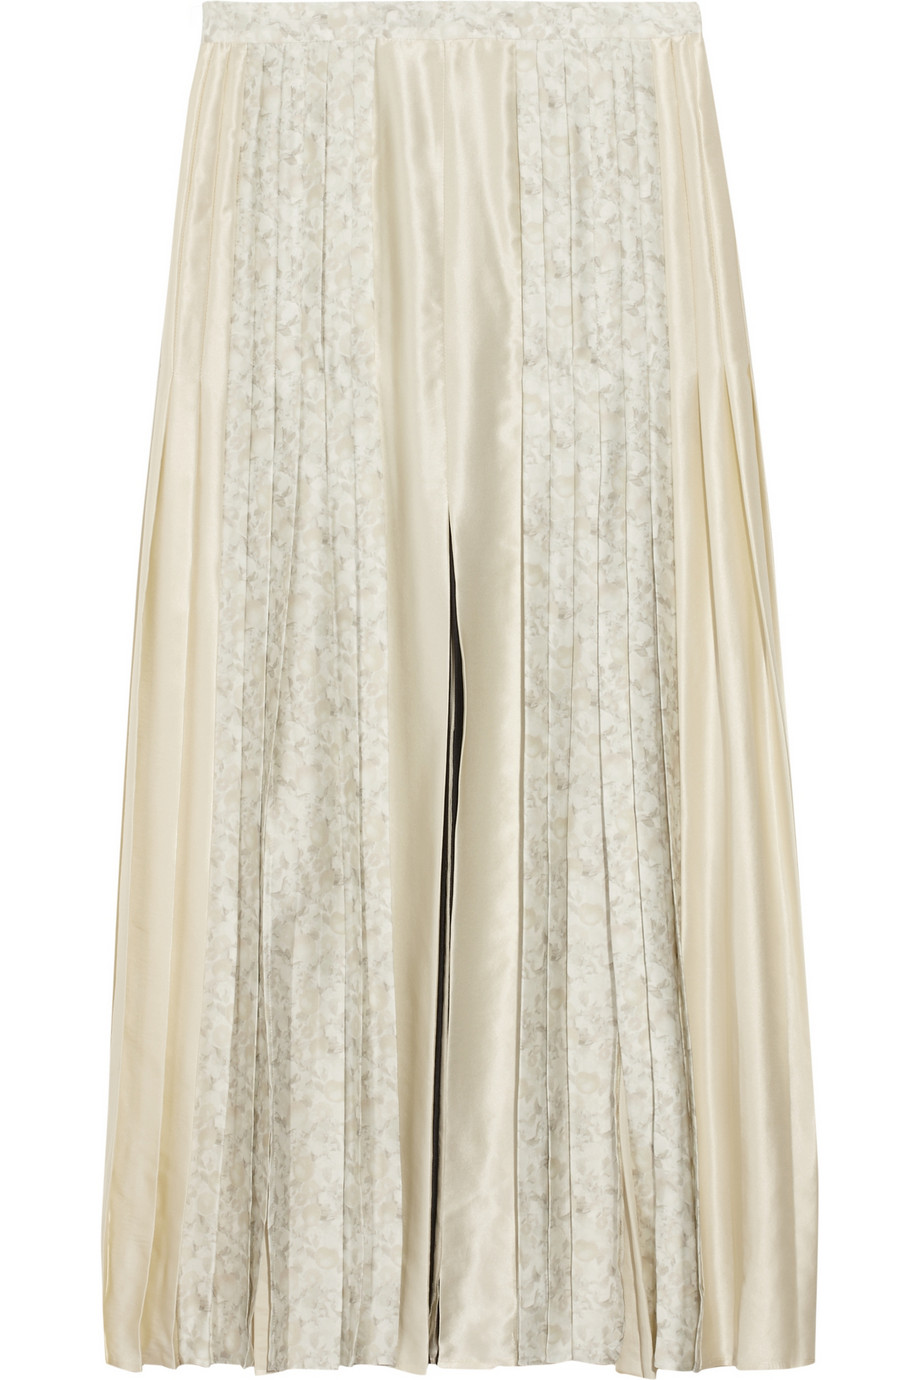 Stella mccartney Pleated Silk Midi Skirt in Natural | Lyst